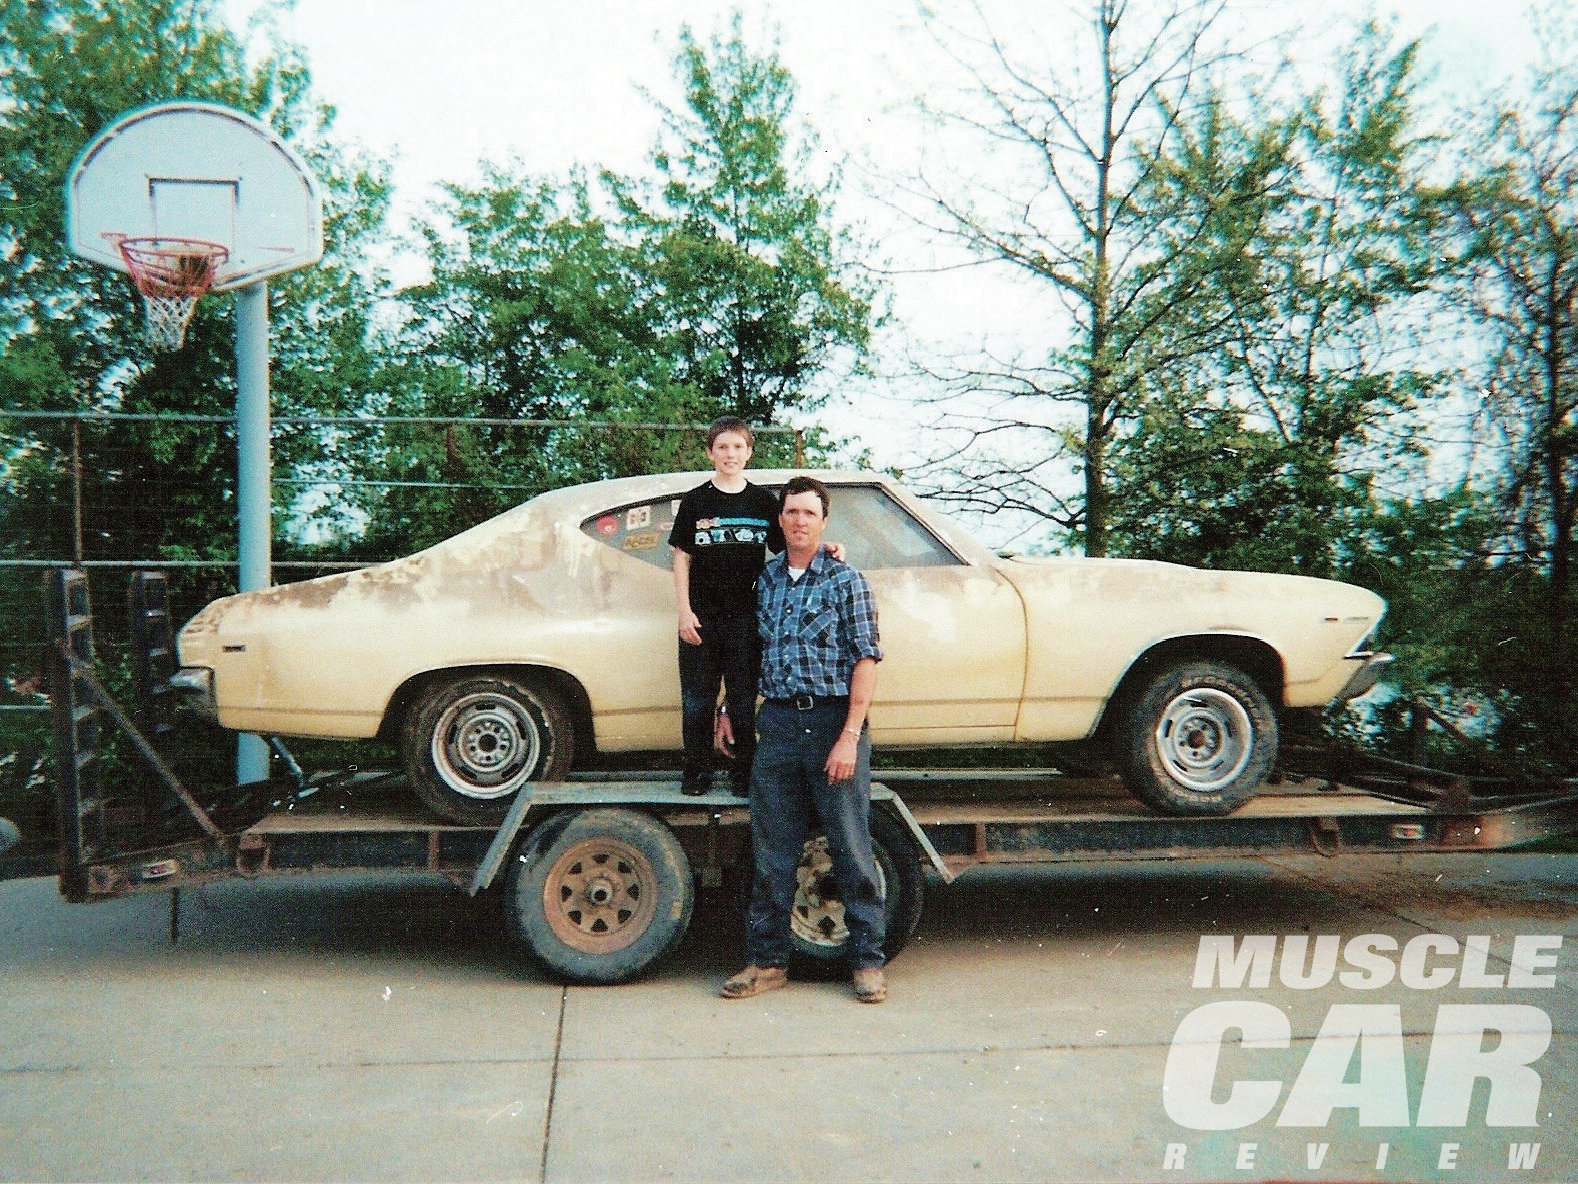 Here are Joe and son Jacob the day they picked up the Chevelle. Looks like a pair of happy campers, don't they?